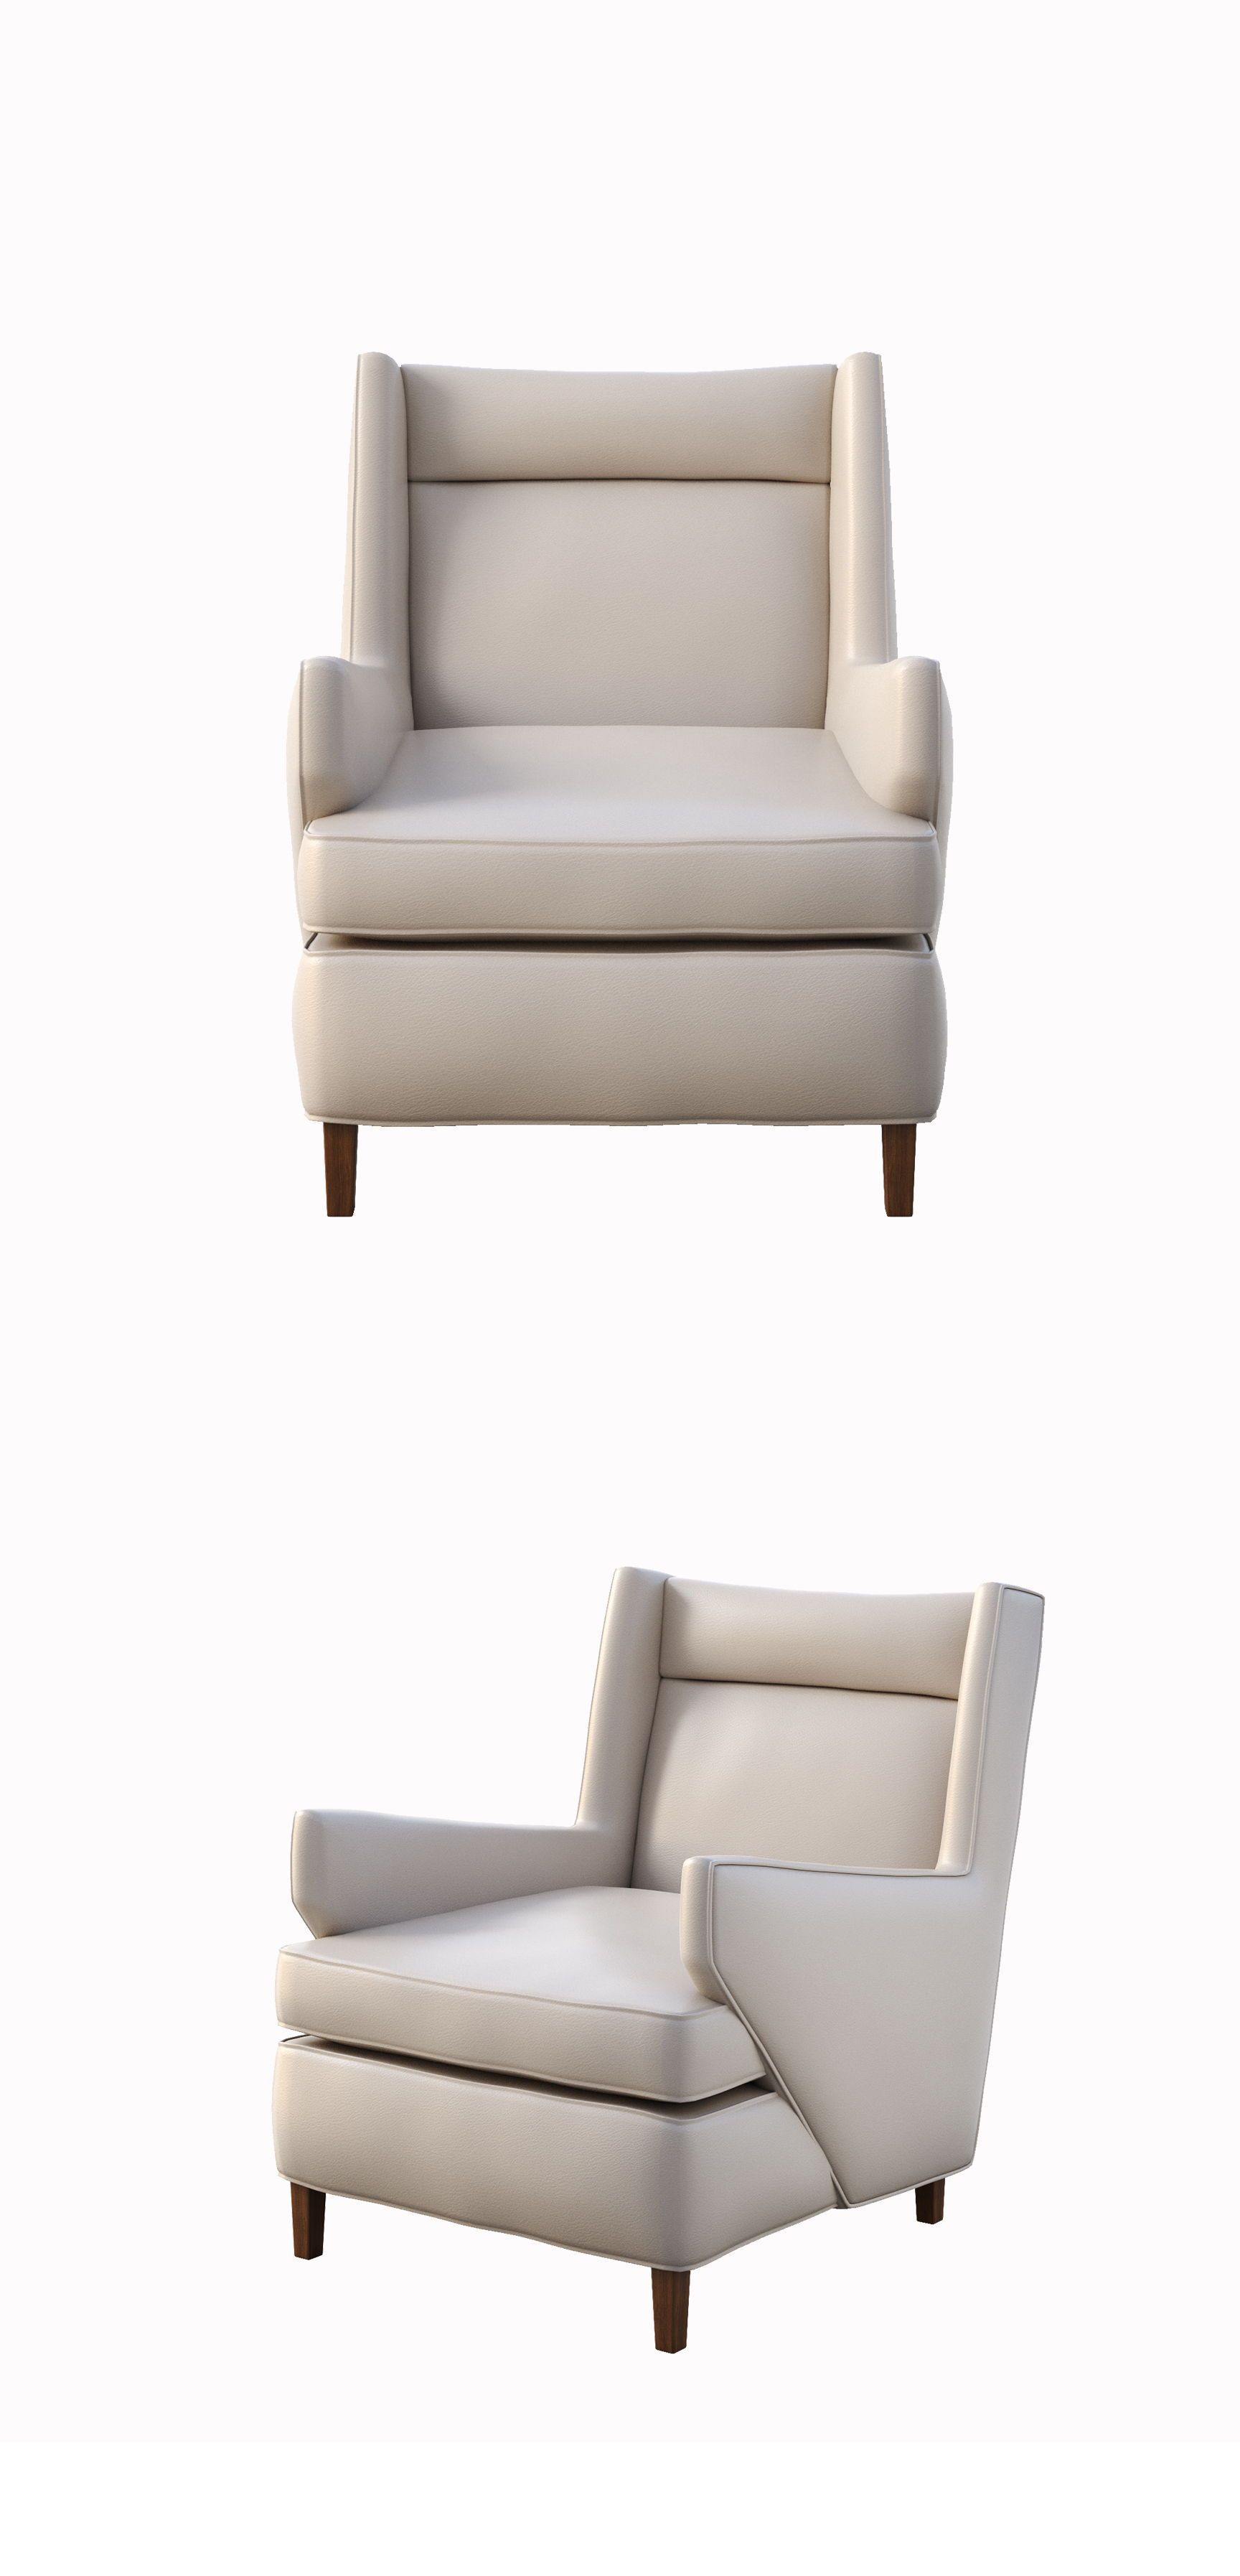 Off White Living Room Chairs 2020 In 2020 White Living Room Chairs White Living Room Living Room Chairs #off #white #living #room #furniture